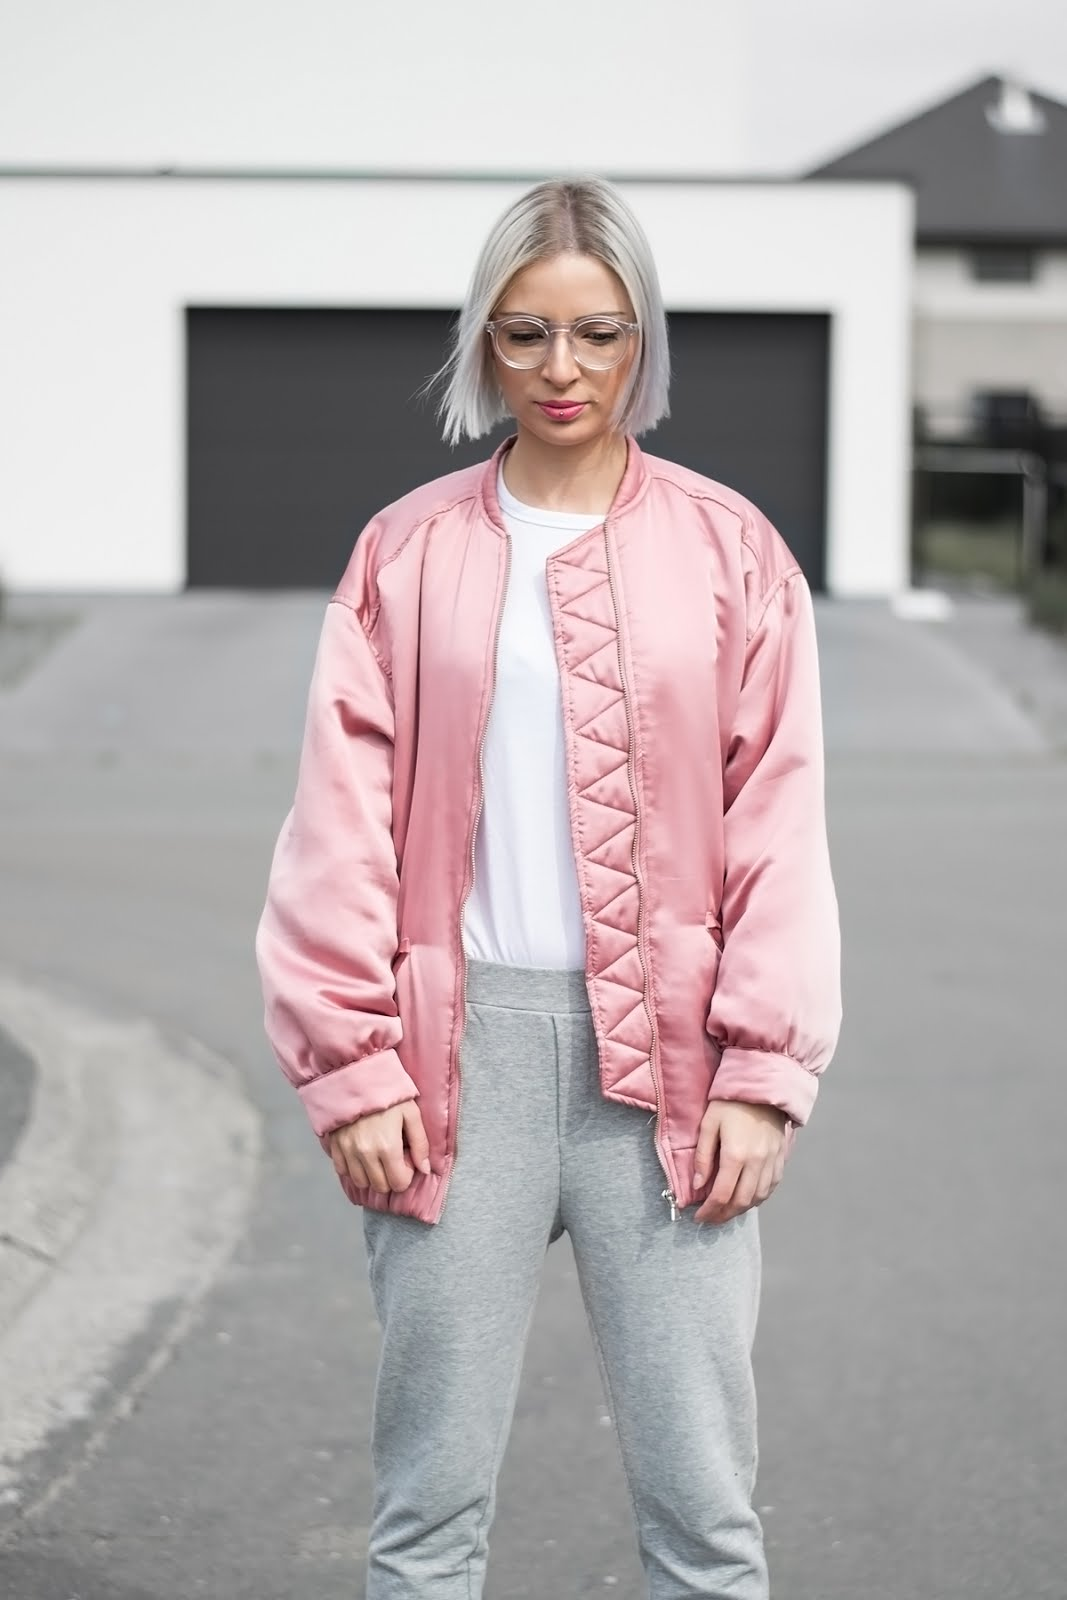 Mango pink oversized bomber jacket, Asos white longsleeve, Mango grey sweat pants, joggers, polette glasses